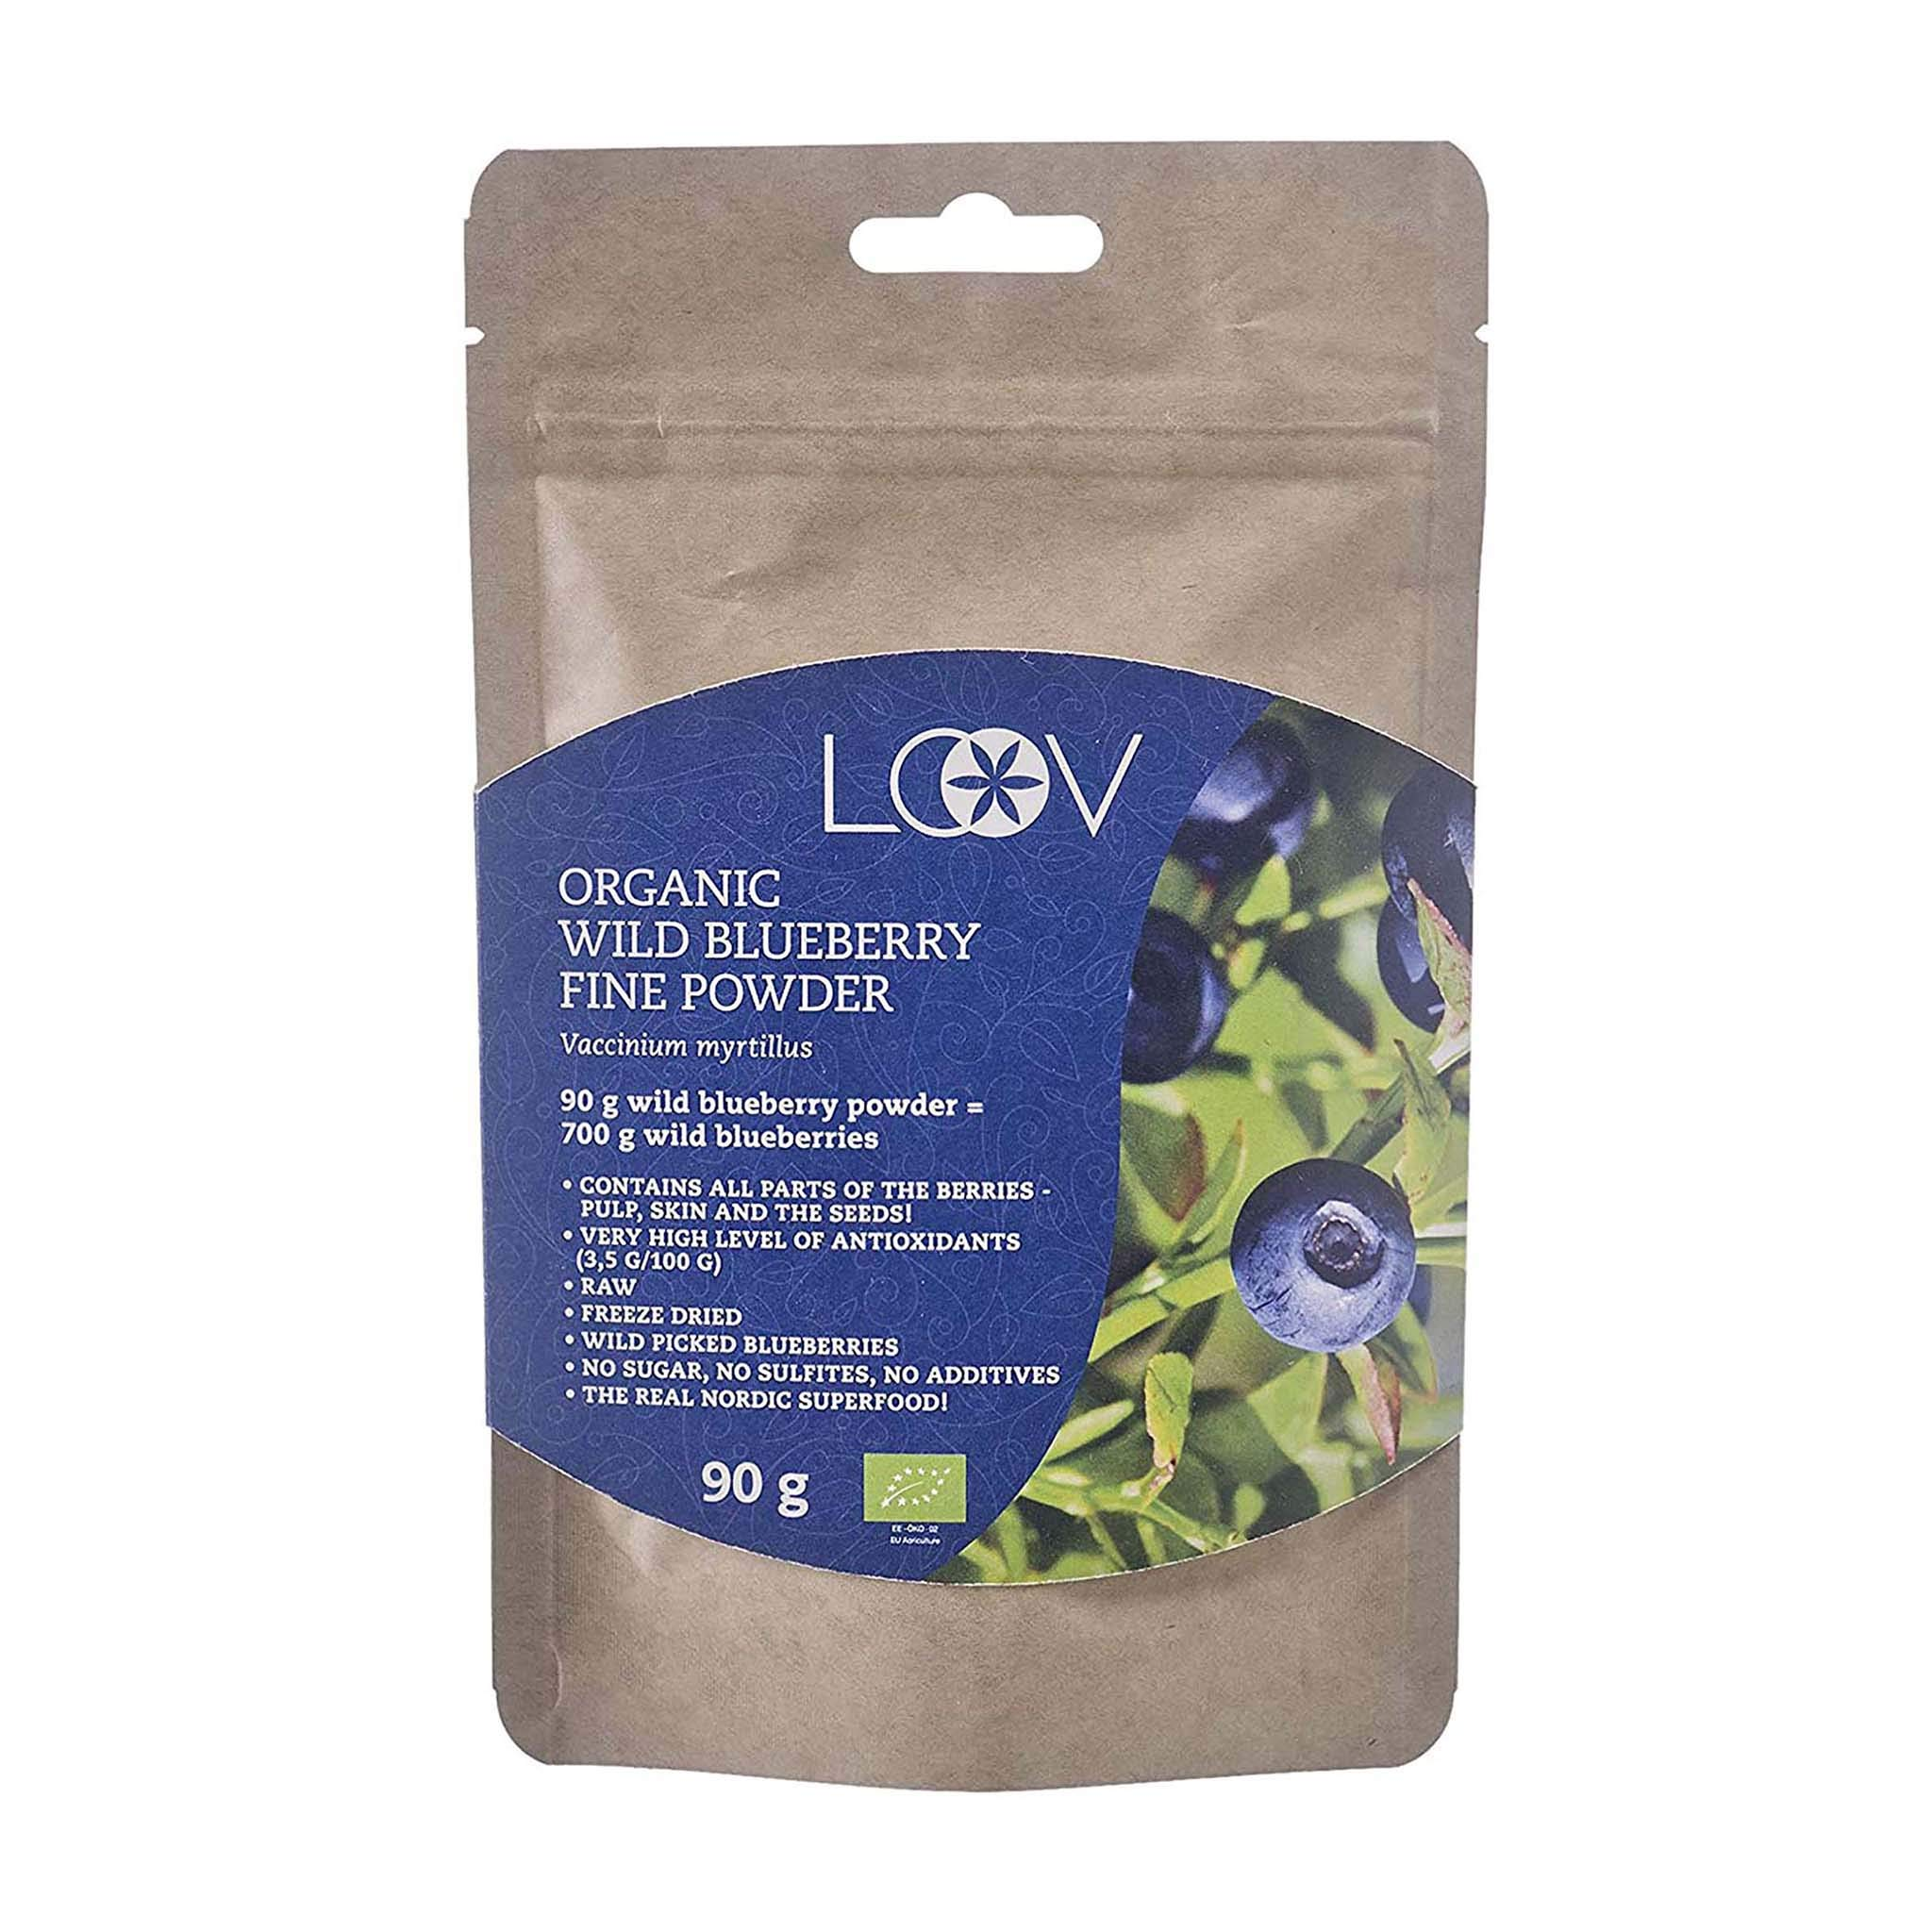 LOOV Wild Blueberry Powder Organic, Wild-Crafted from Nordic Forests, 100% Whole Fruit Bilberry, 90 g, Freeze-Dried and Powdered Blueberries, no Added Sugar